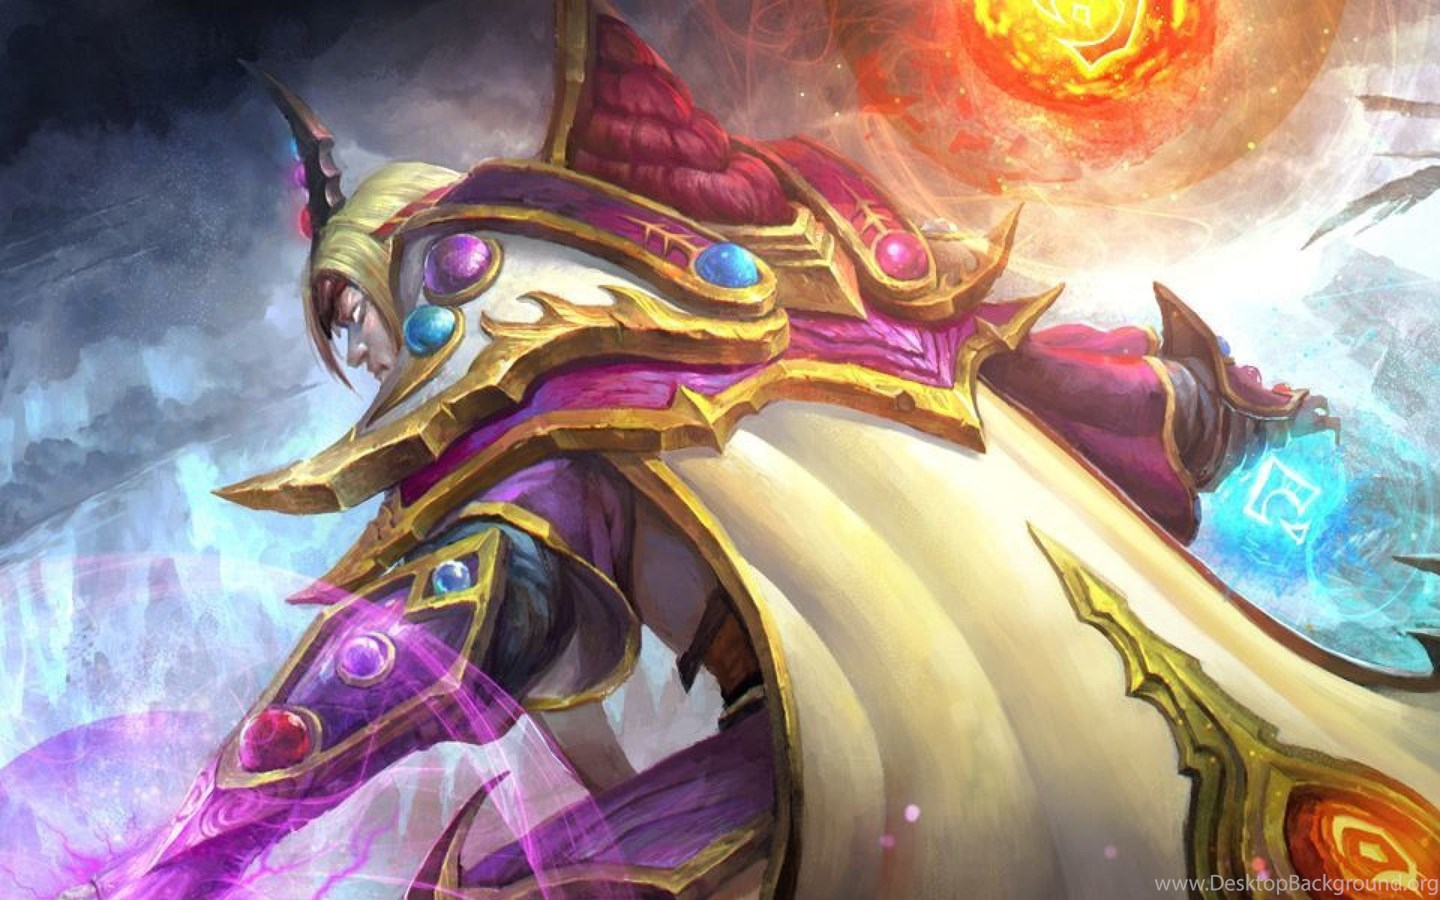 Invoker HD Wallpaper DOTA 2 Source Dual Wide Dota Wallpapers Desktop Backgrounds 3840x1200